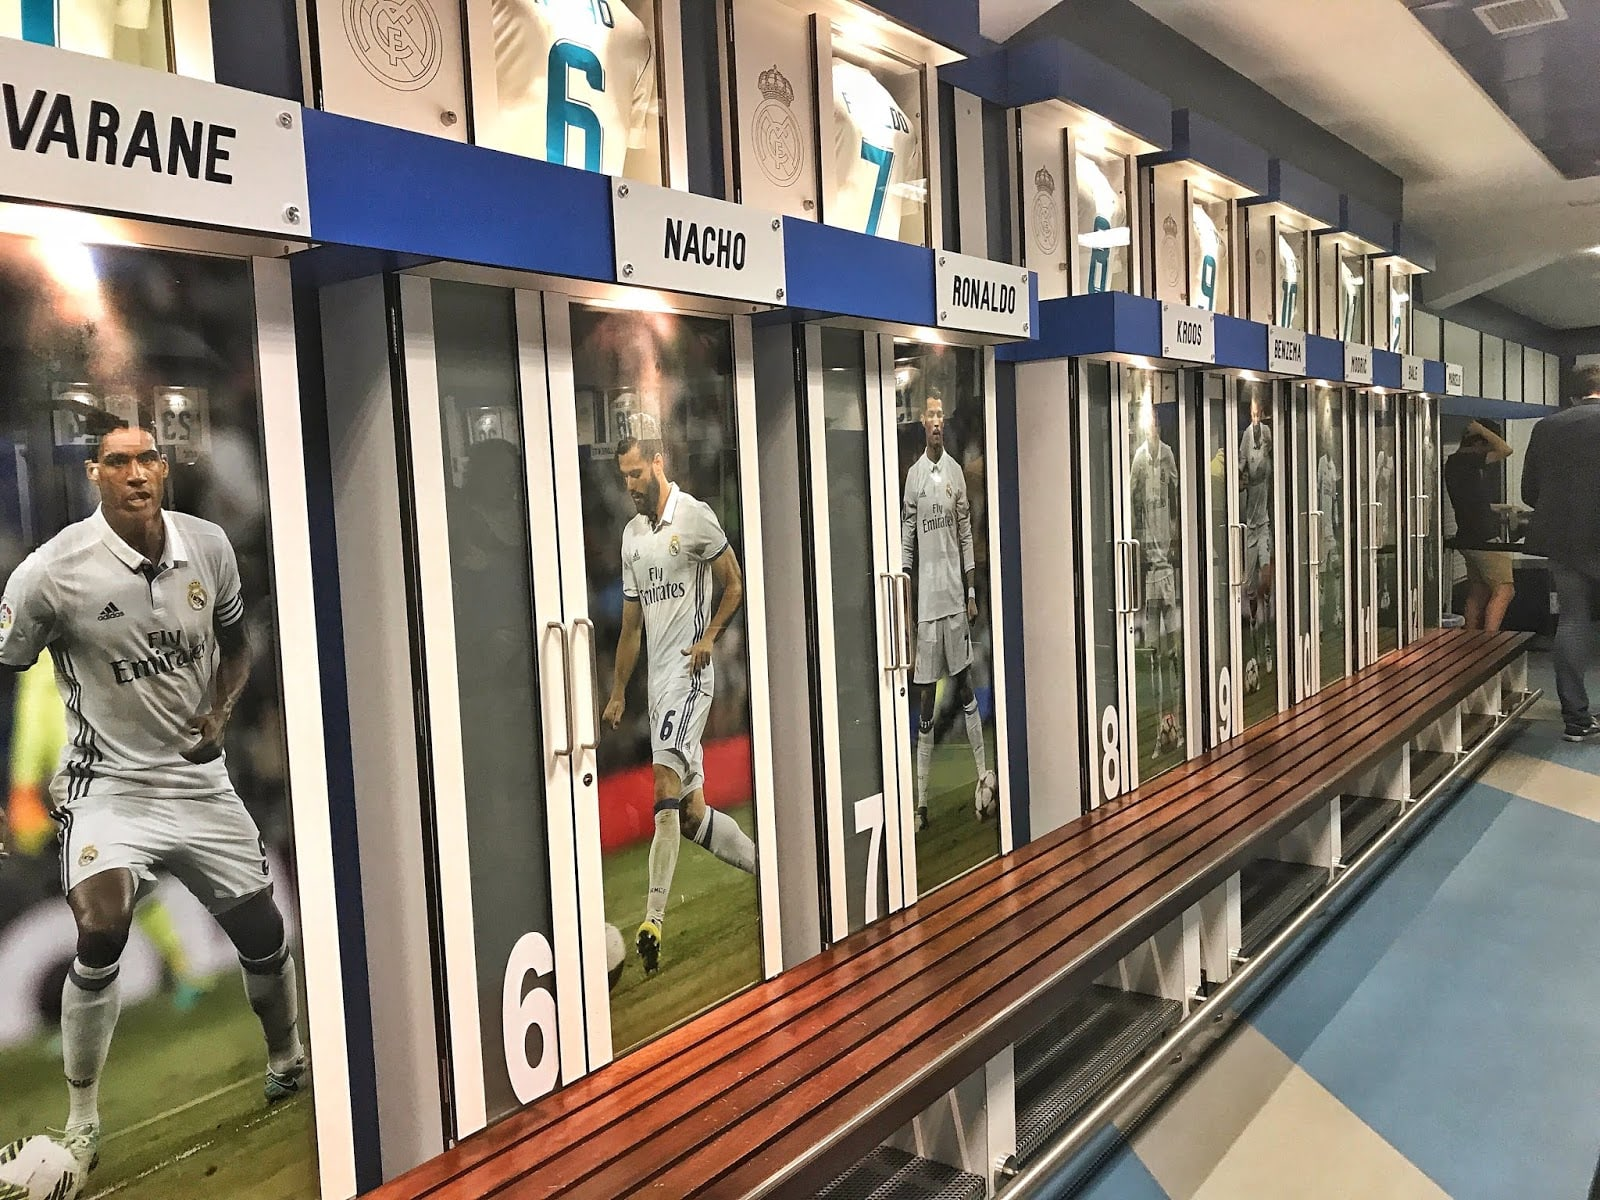 Santiago Bernabéu Locker Room